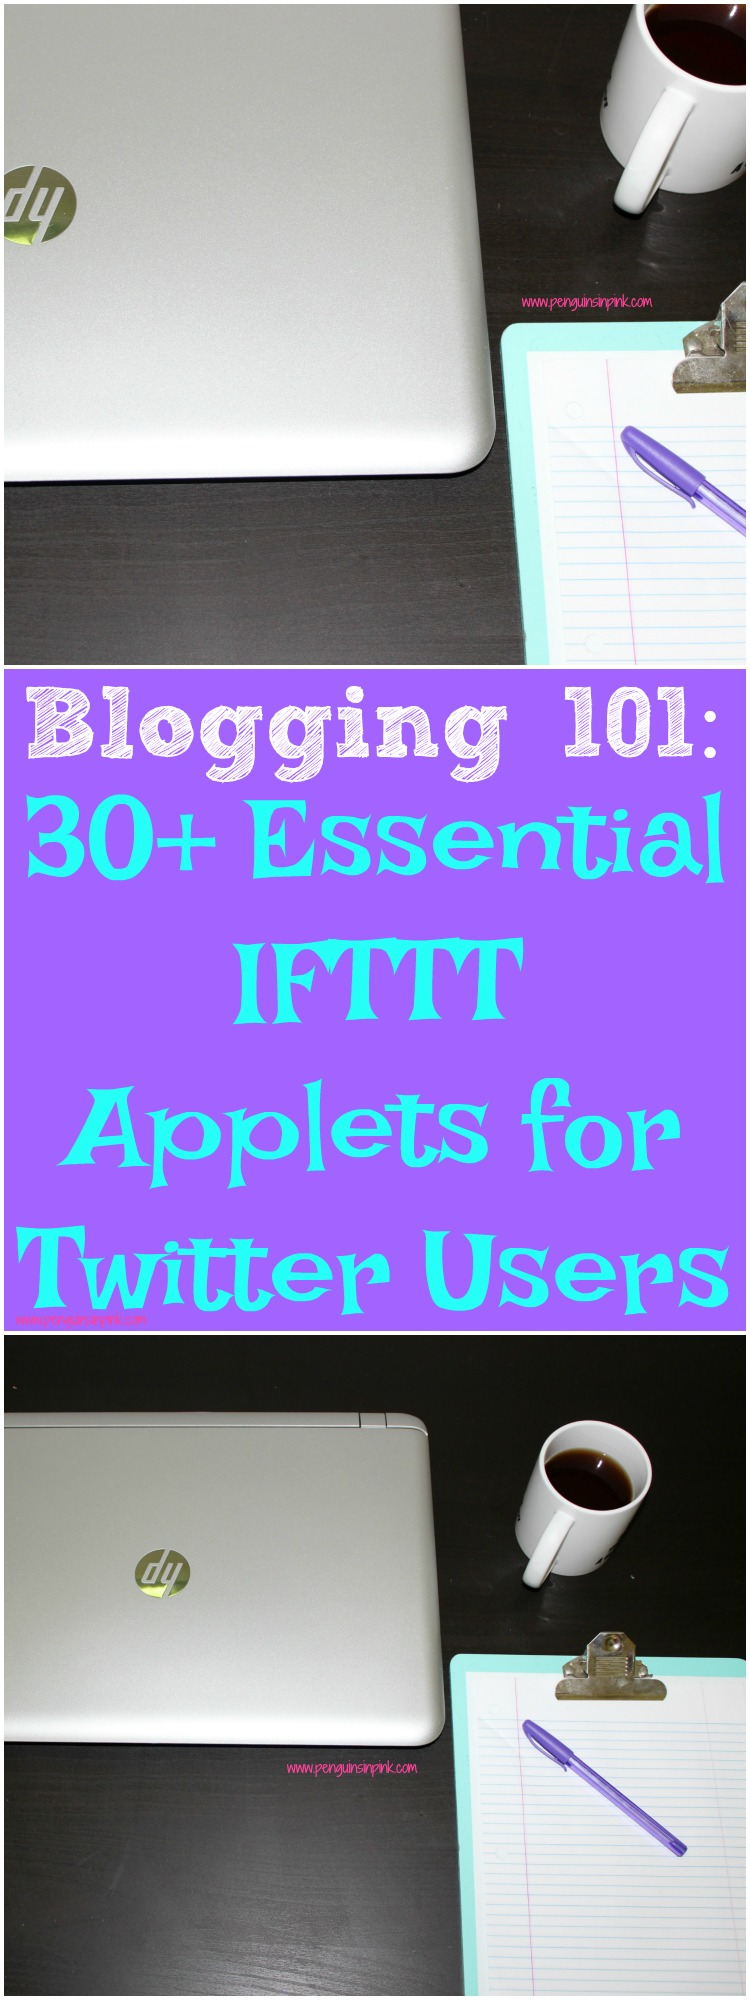 Blogging 101: 30+ Essential IFTTT Applets for Twitter Users Automate your Twitter life! Let IFTTT take care of some cross posting, keep your profile pictures in sync and numerous other tasks.